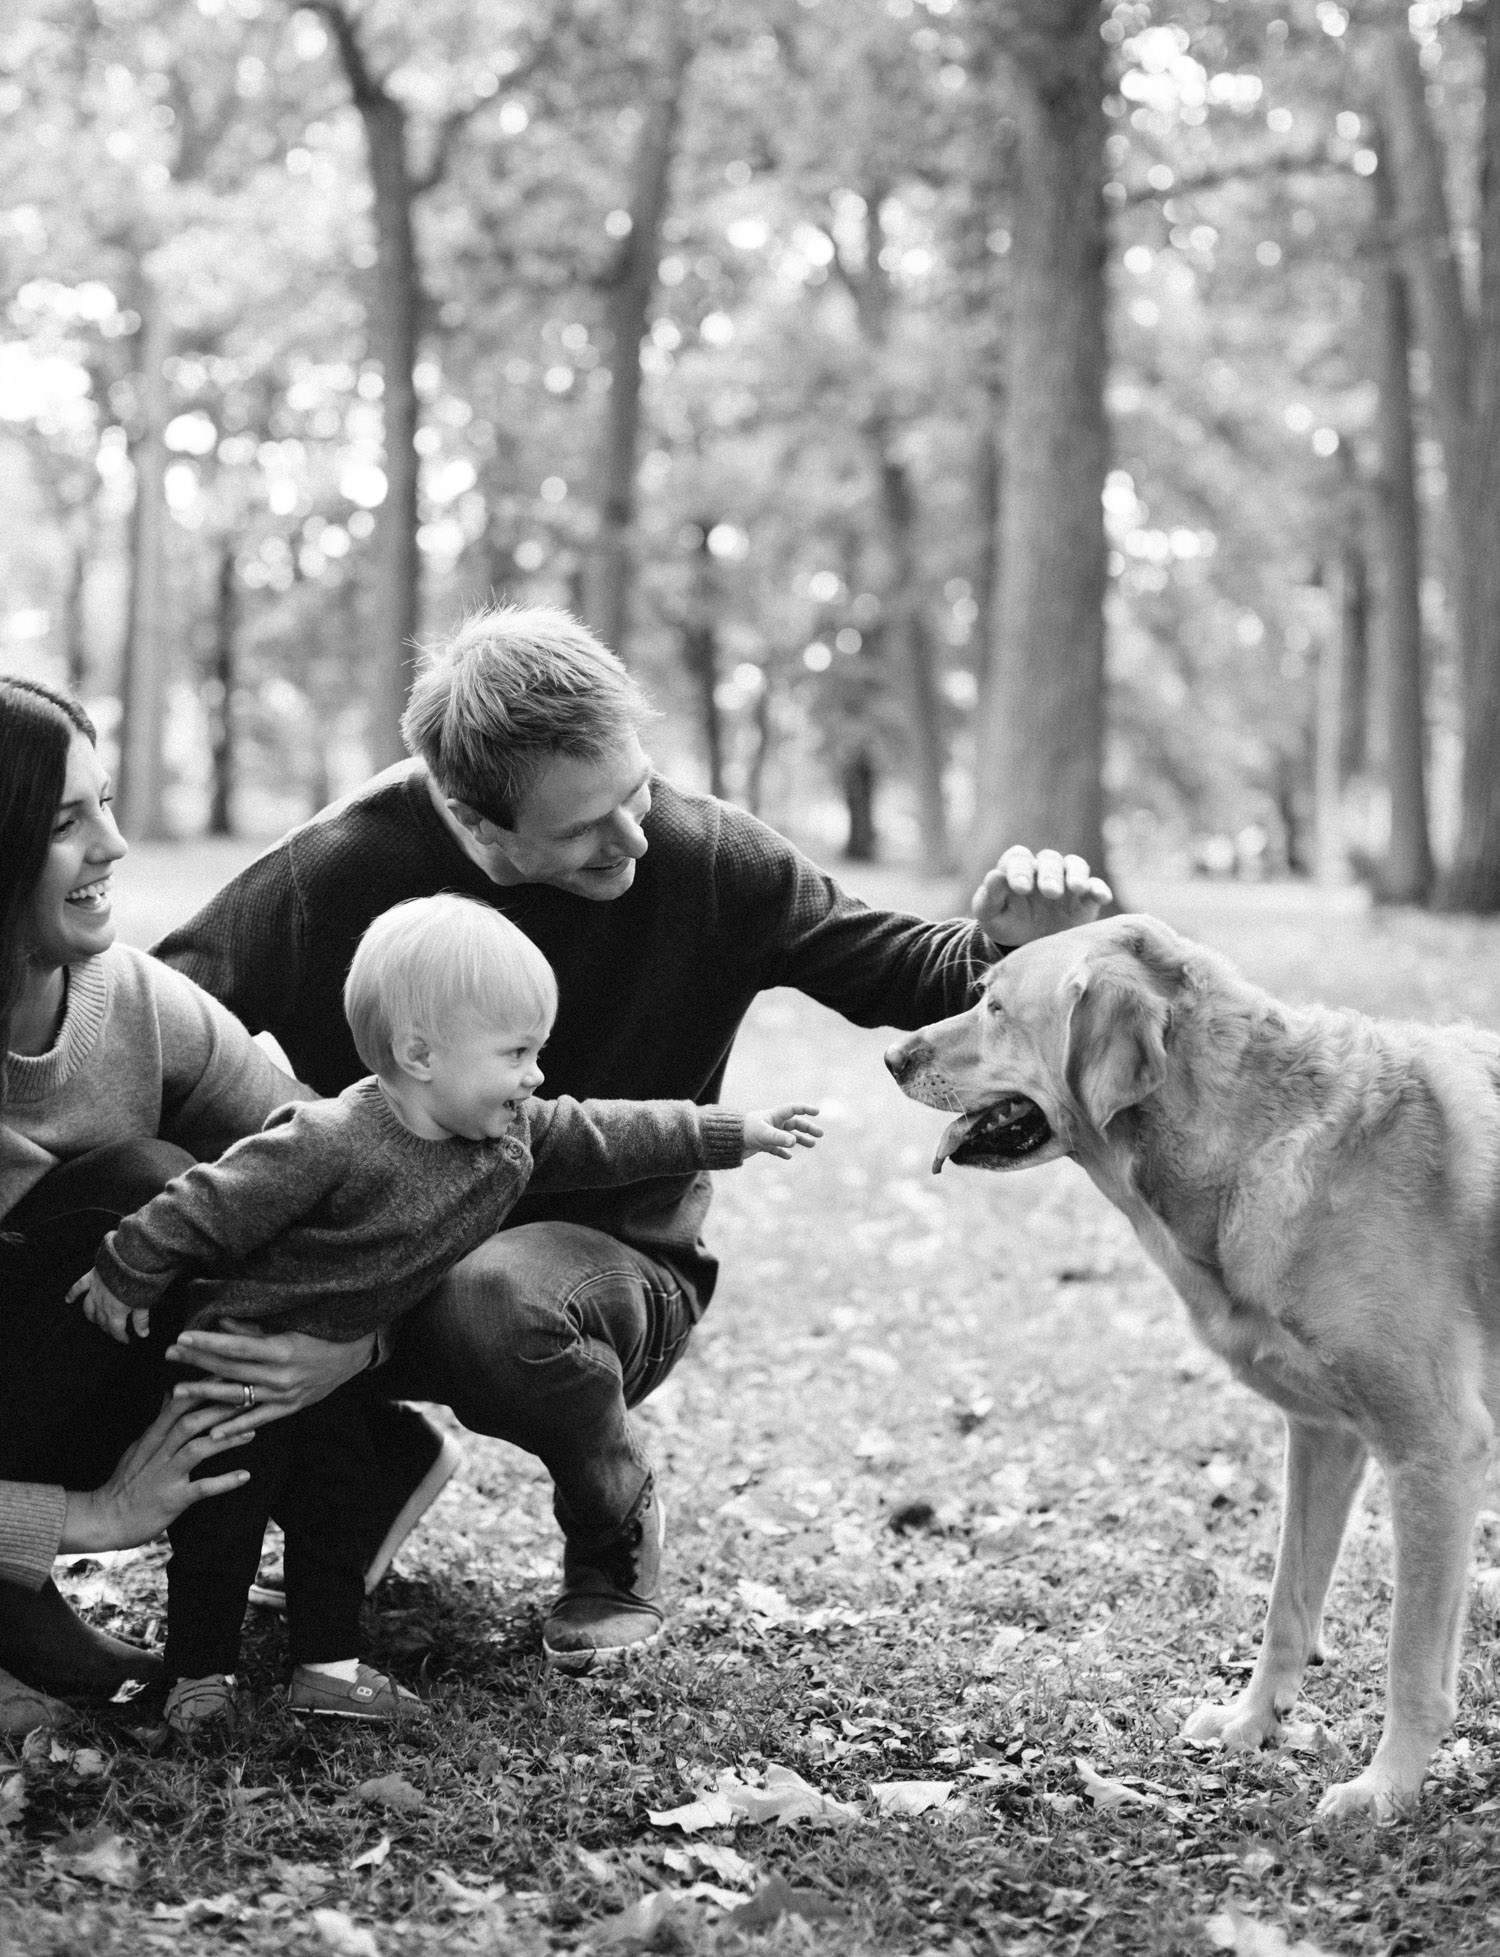 A little boy reaches to pet his dog during a lifestyle family photoshoot in Royal Oak, Michigan